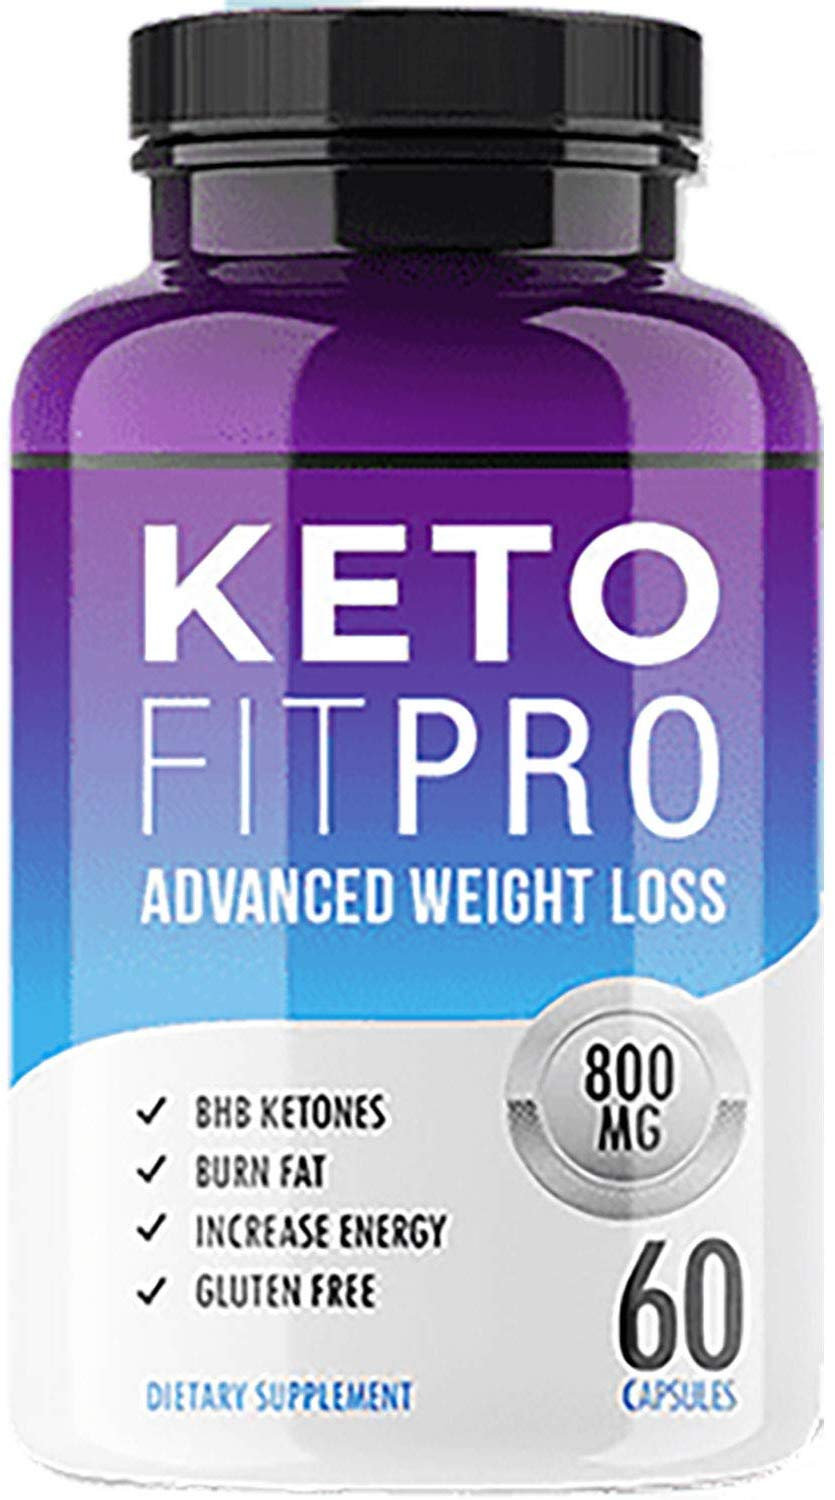 Keto Fit Pro Price In India Weight Loss Benefits Ingredient Price